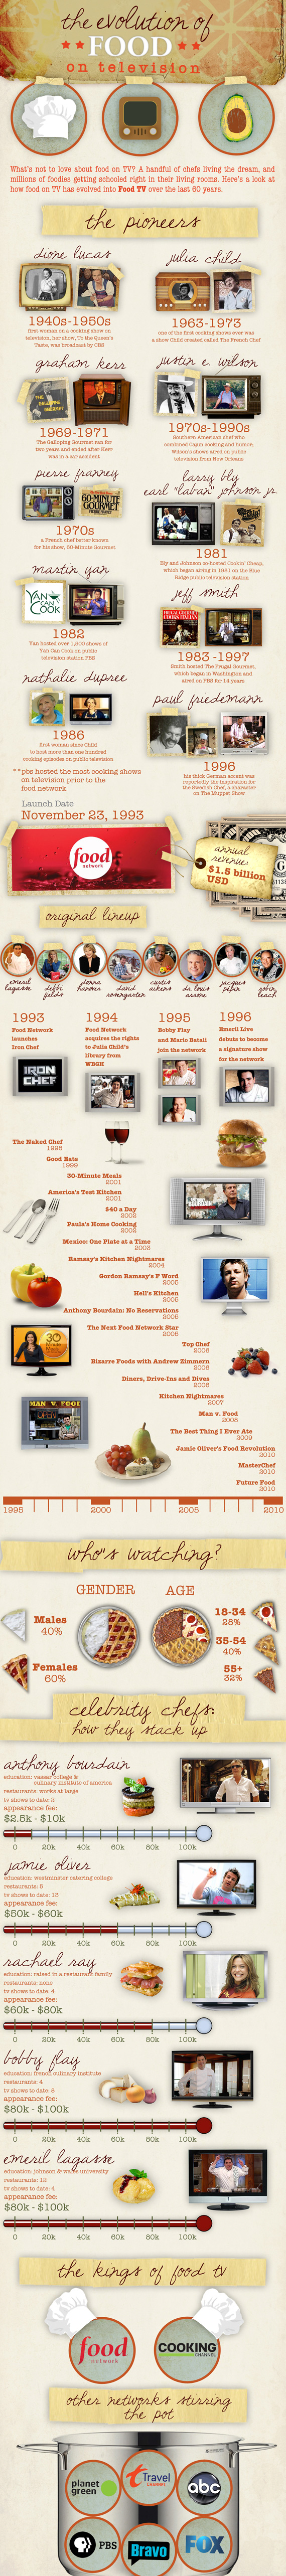 The Visual History of TV Cooking Shows